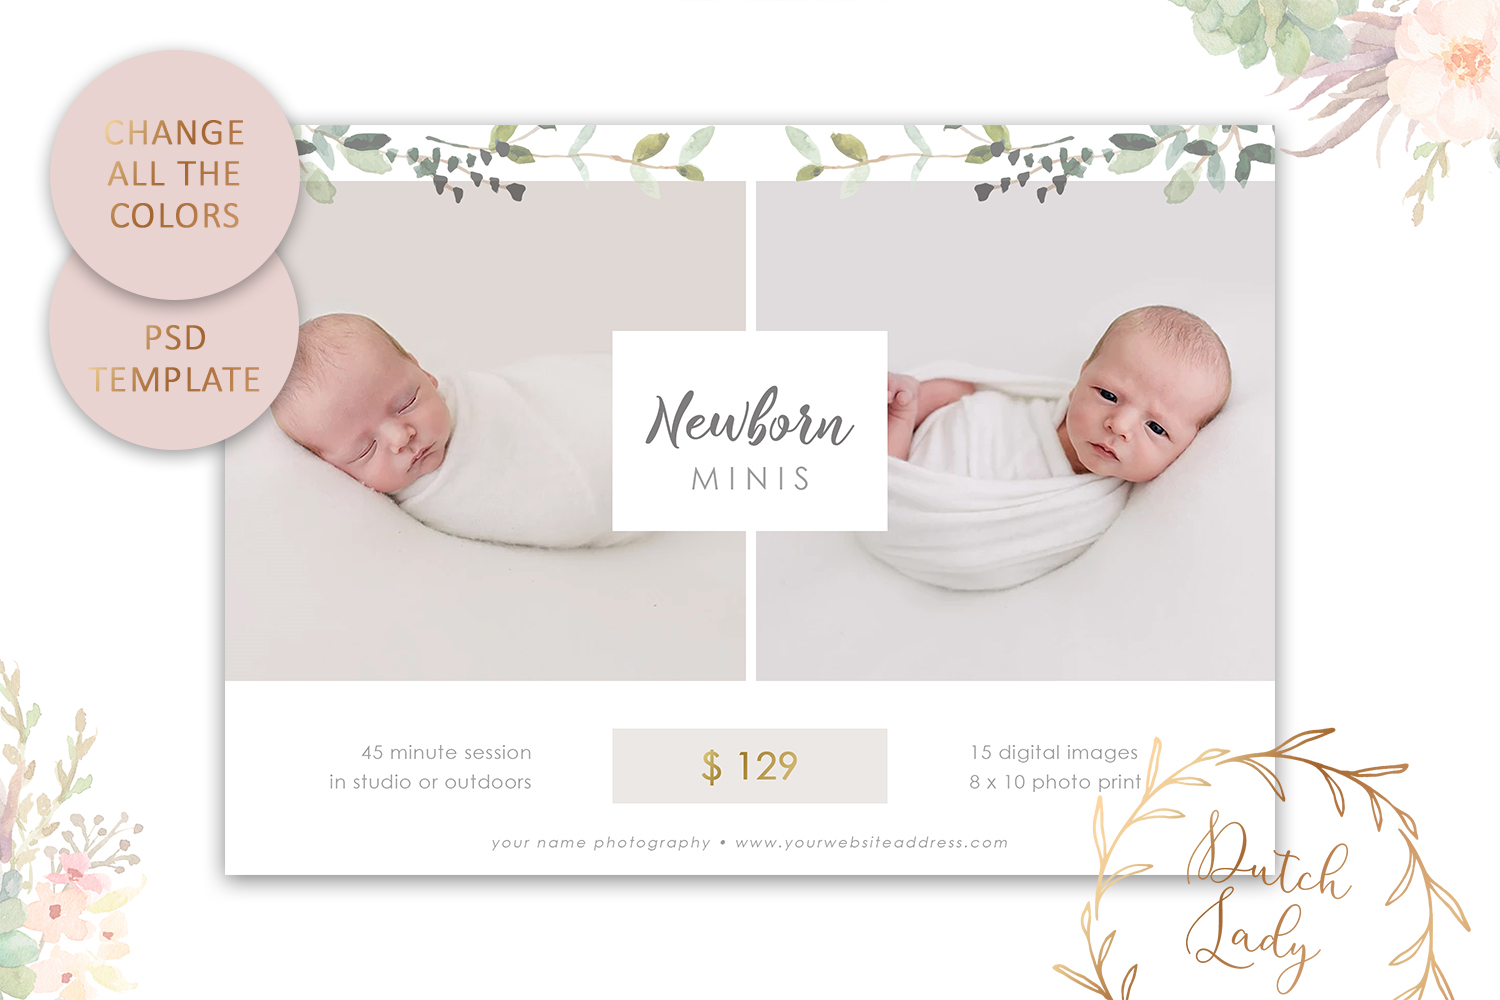 PSD Easter Photo Session Card Template - Design #50 example image 4